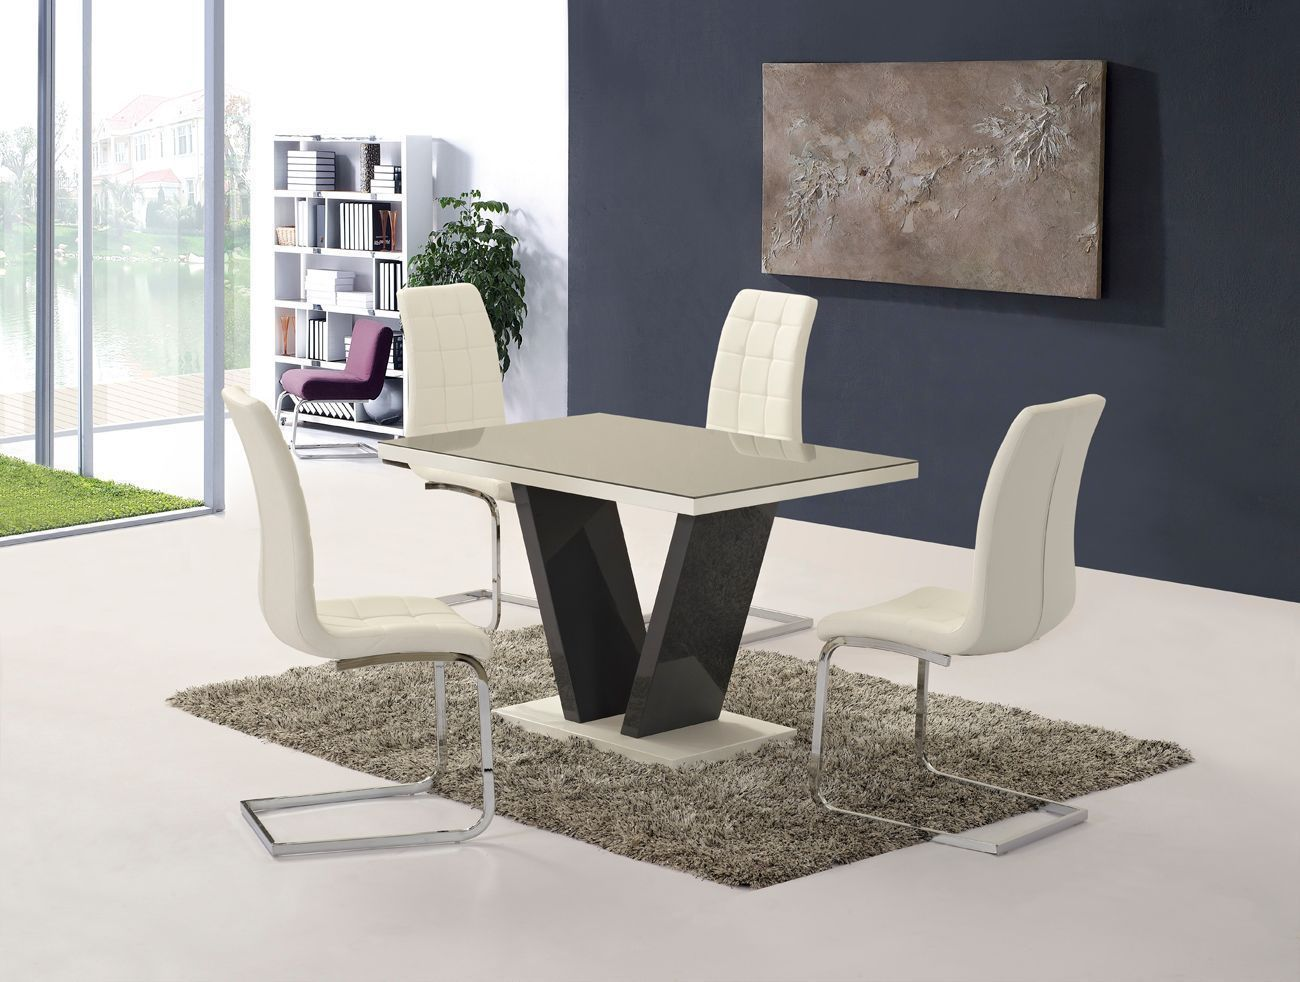 ... Grey High Gloss Glass Dining Table And 6 White Chairs Set